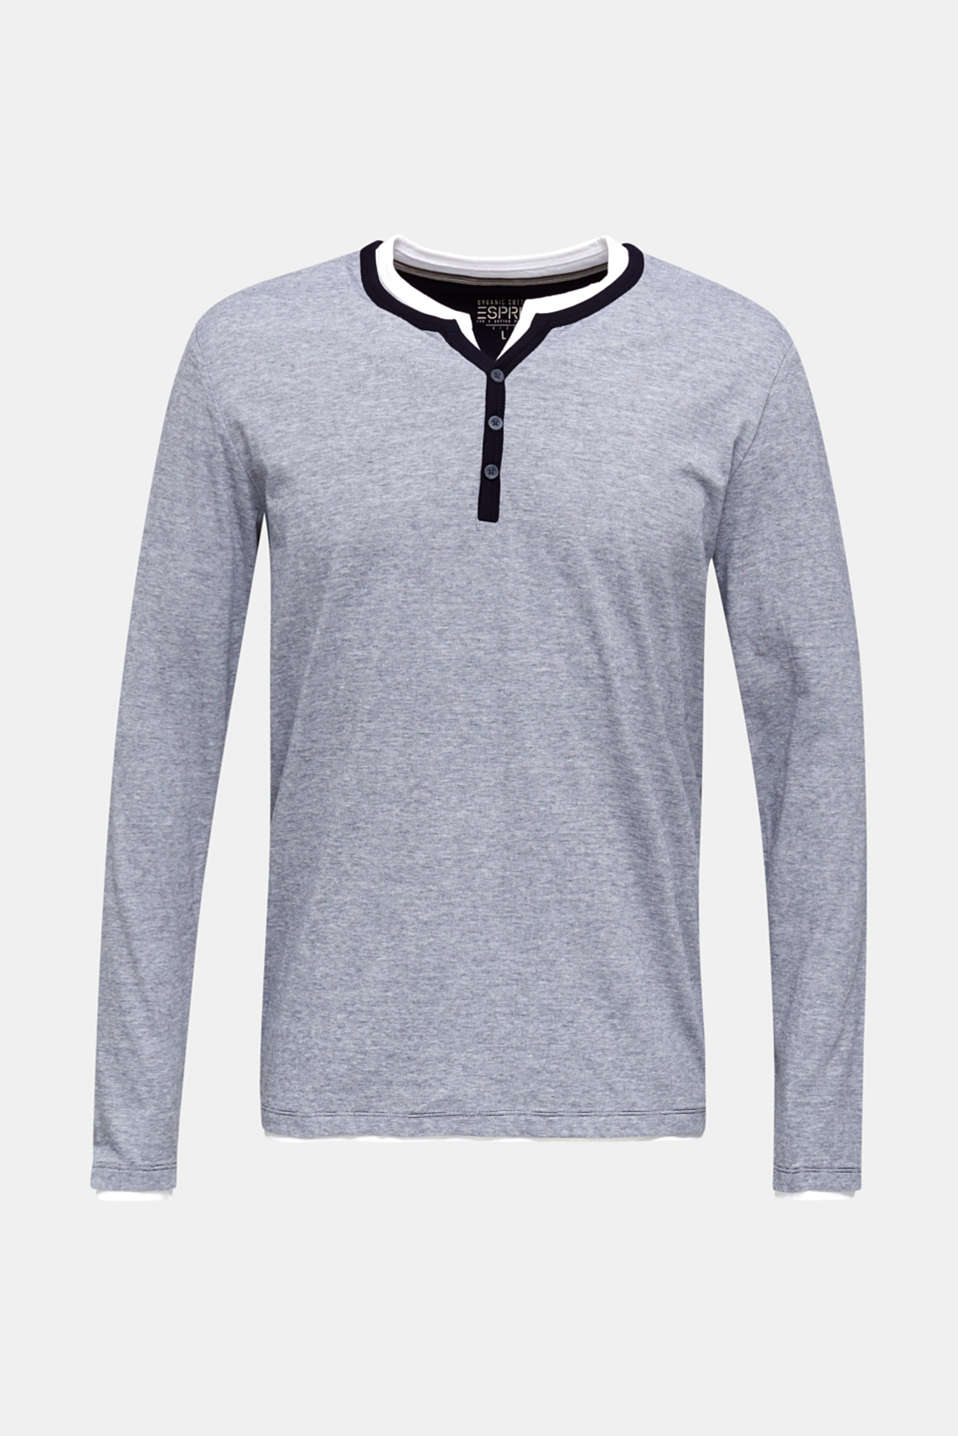 Long sleeve jersey top in 100% cotton, NAVY 3, detail image number 7